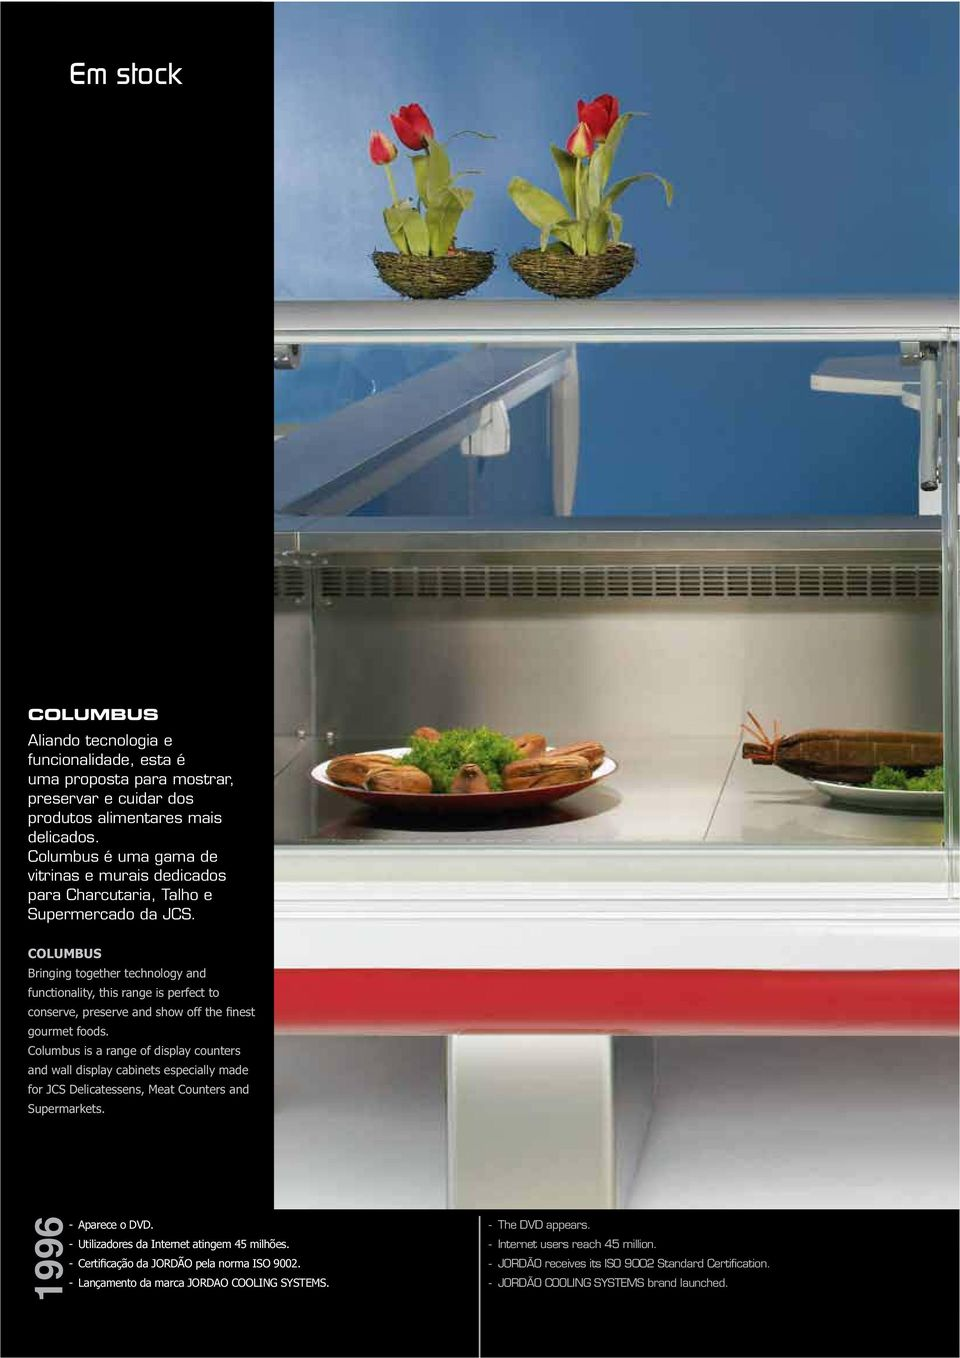 Bringing together technology and functionality, this range is perfect to gourmet foods.